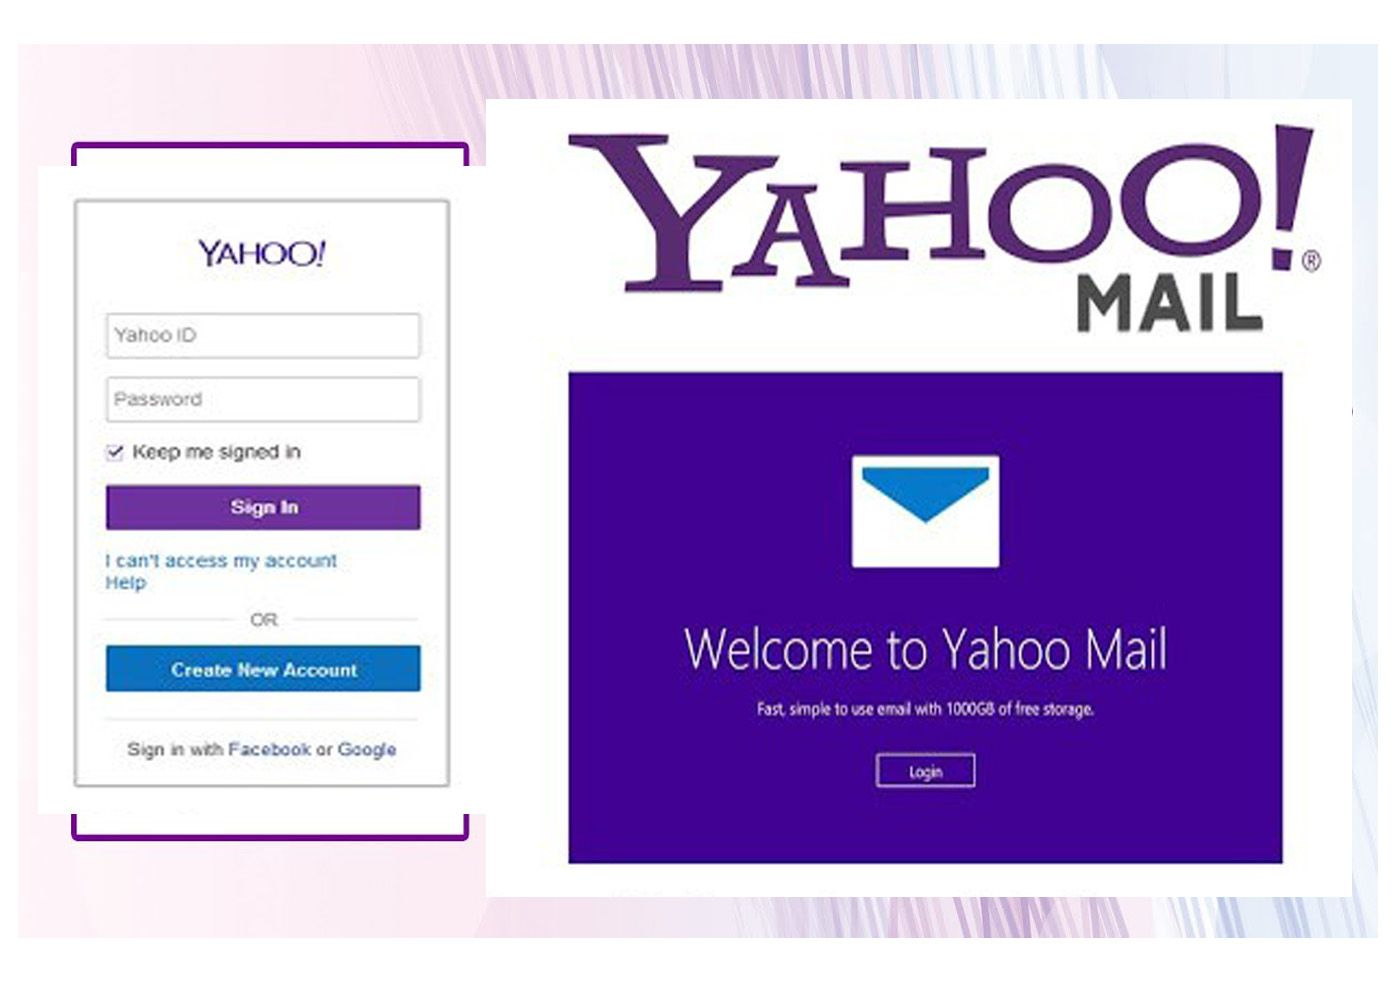 Yahoo Mail Email Account Mail Yahoo Free Stuff By Mail